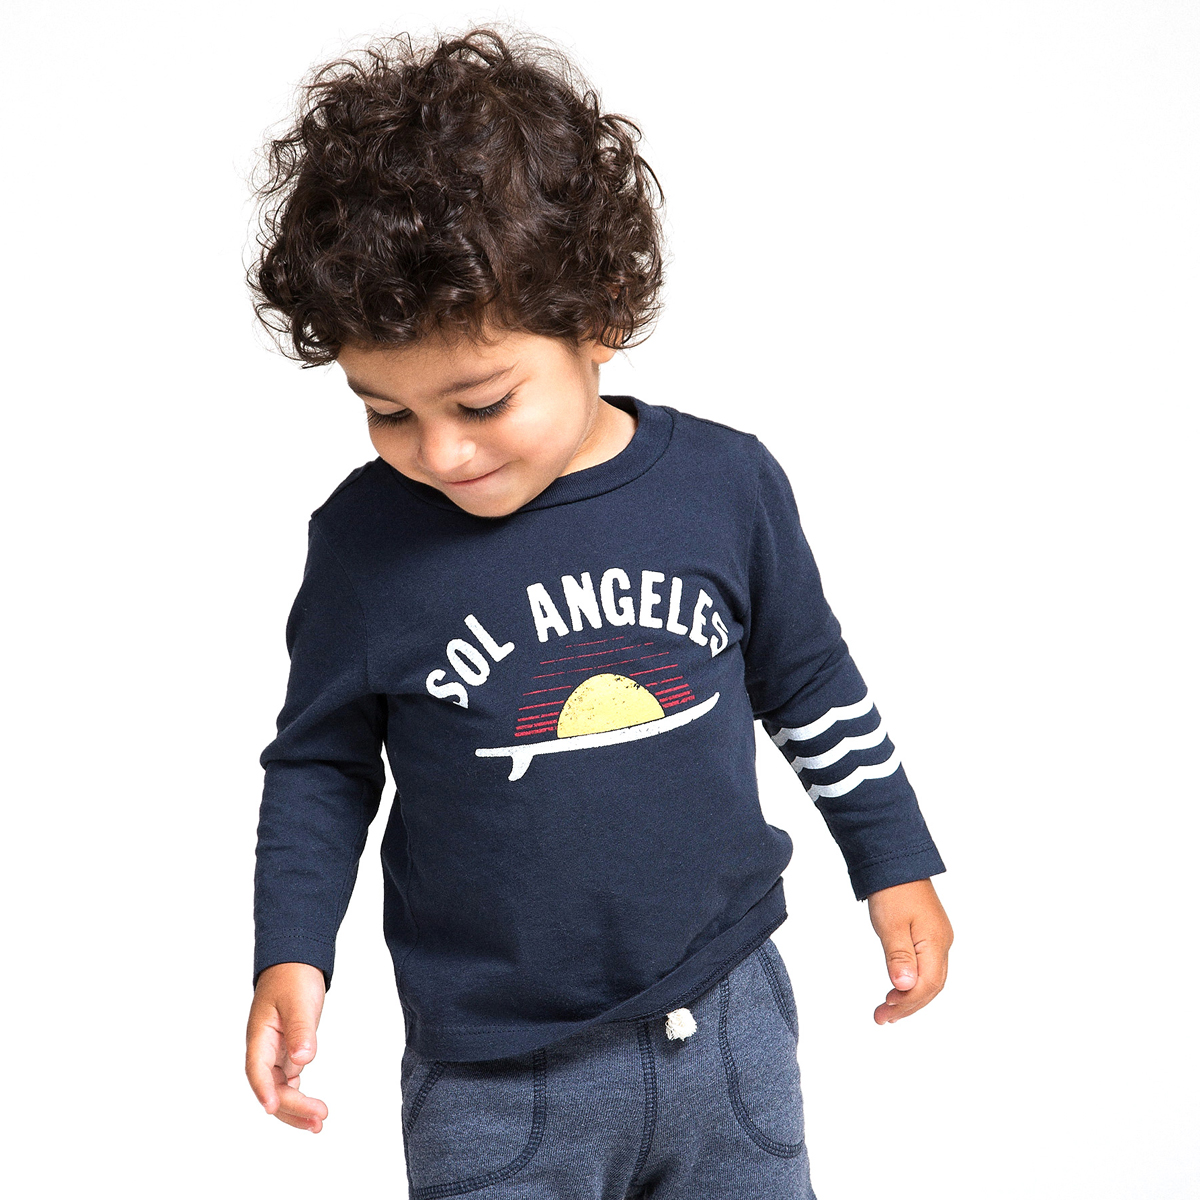 Sol Angeles Long Sleeve Tee in Sol Angeles Surf print on toddler